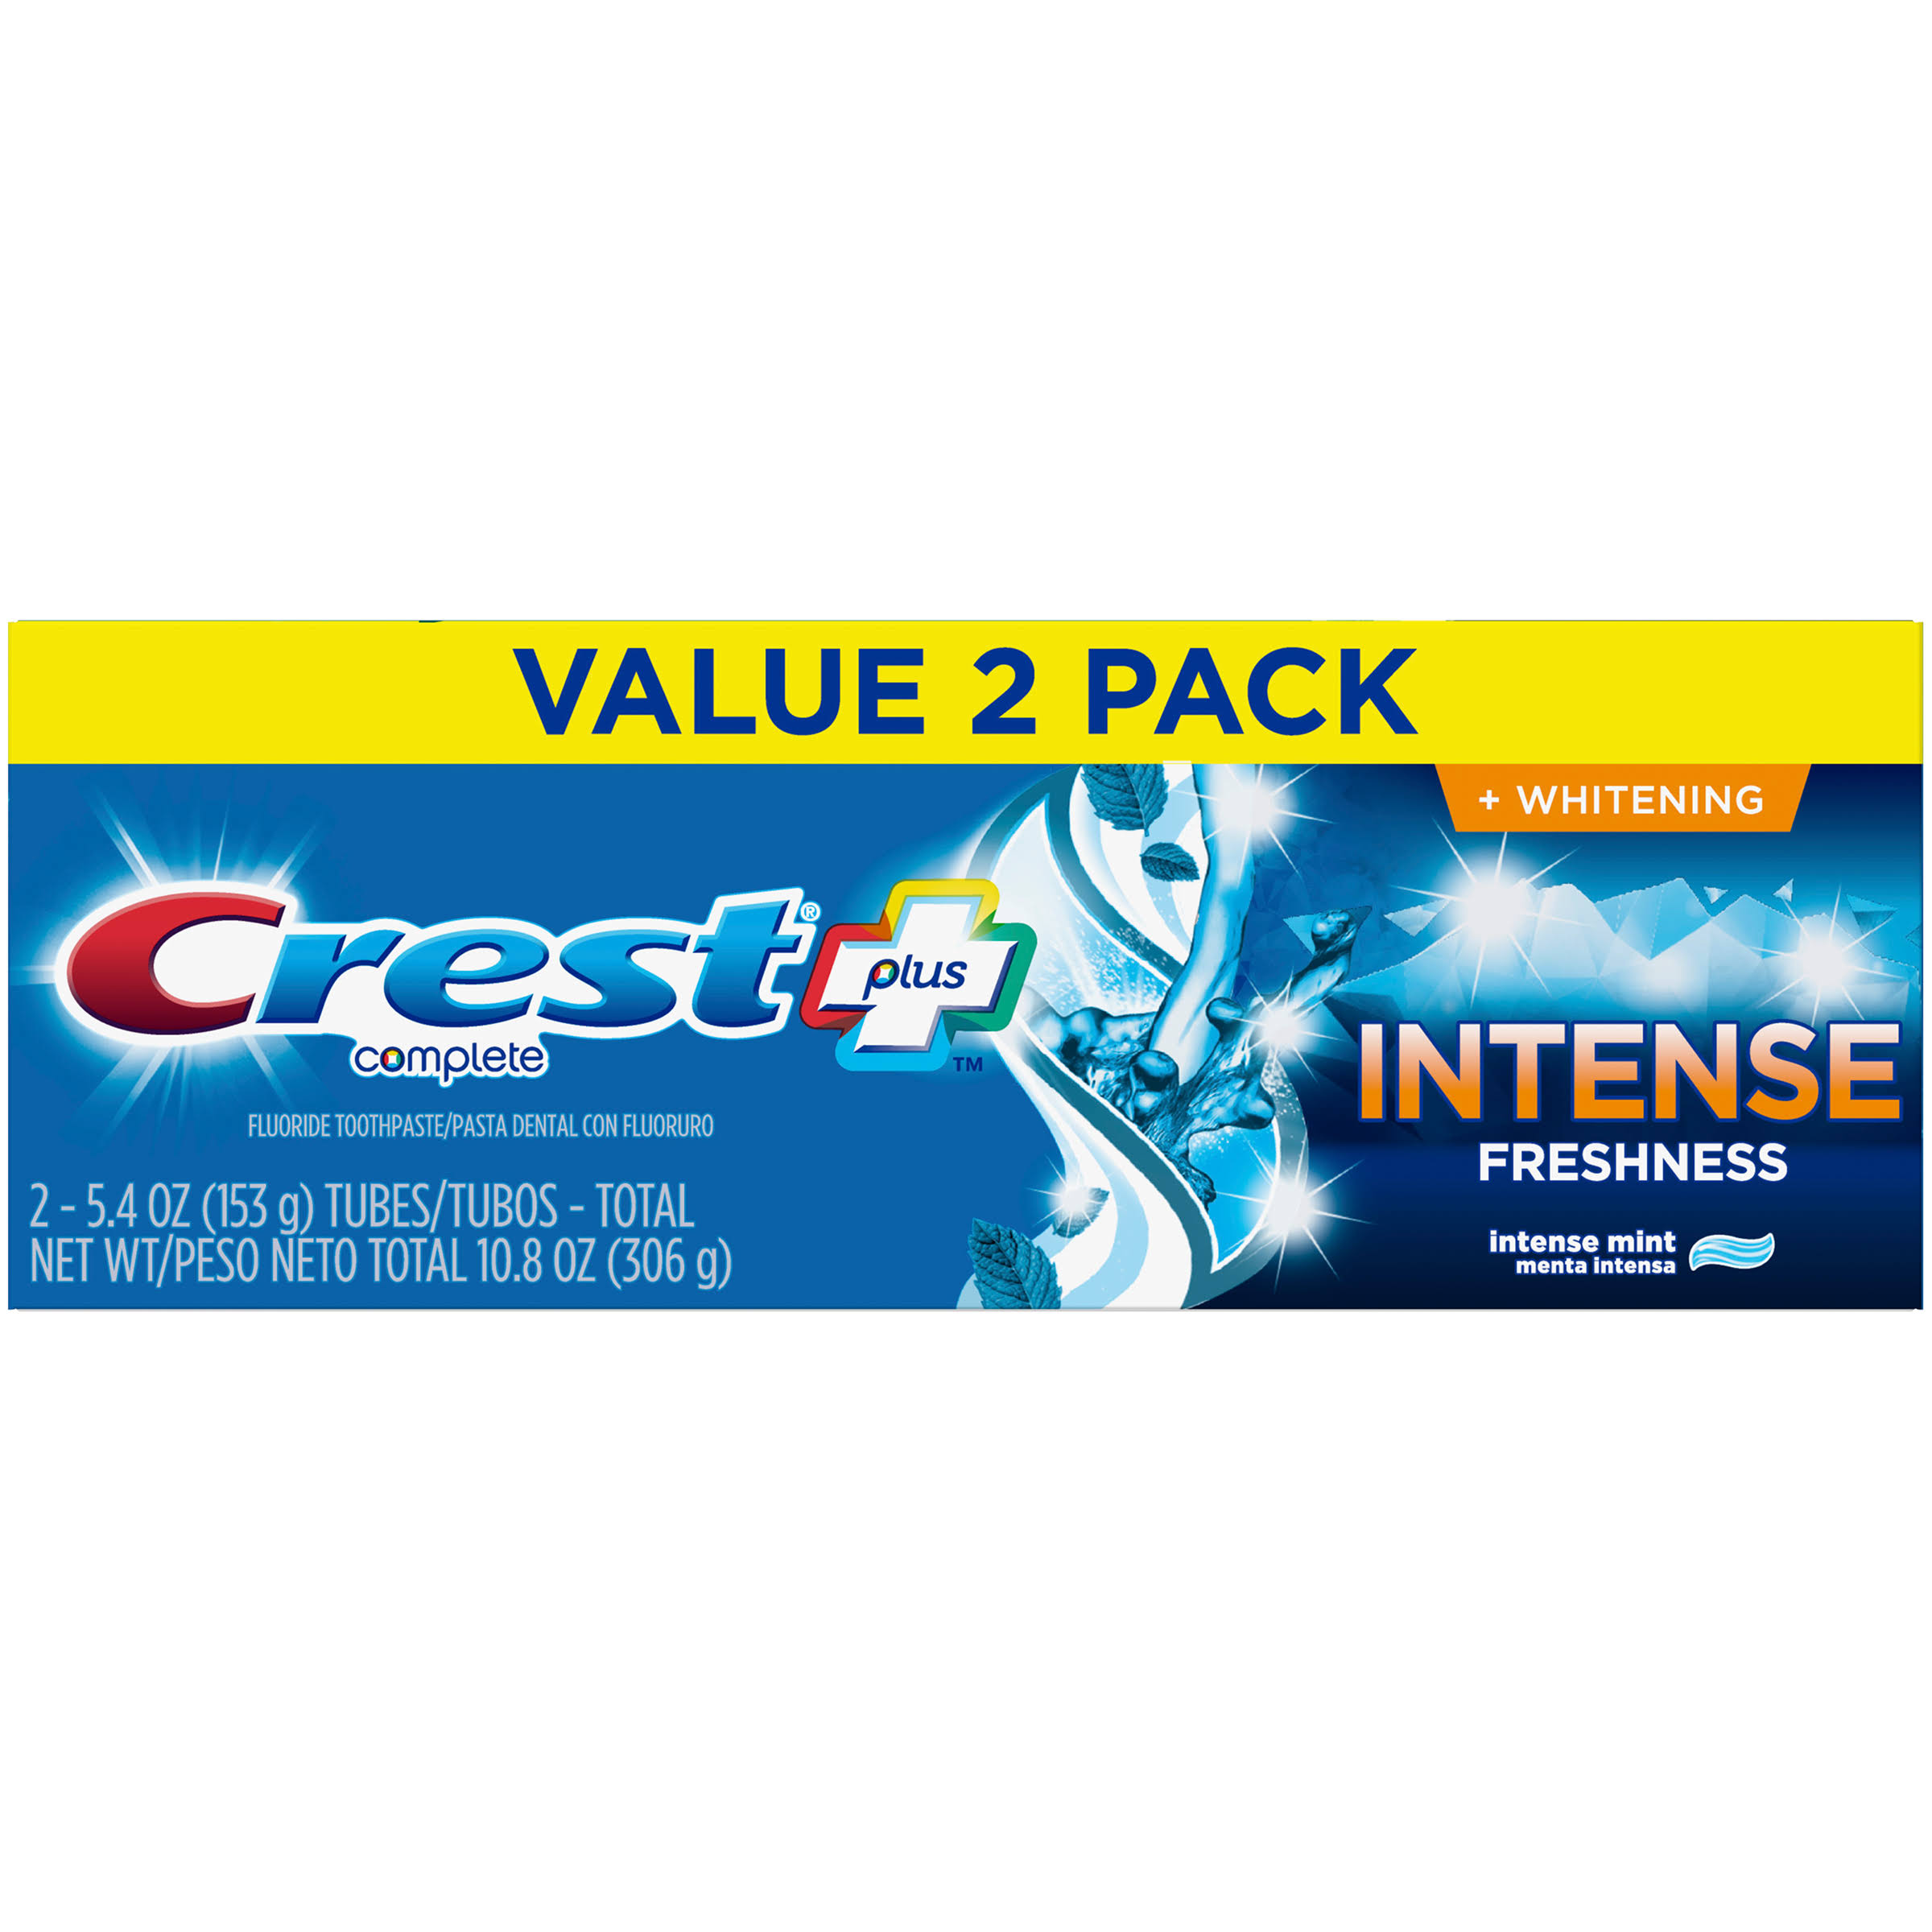 Crest + Intense Freshness Complete Whitening Toothpaste - 5.4oz - Pack of 2